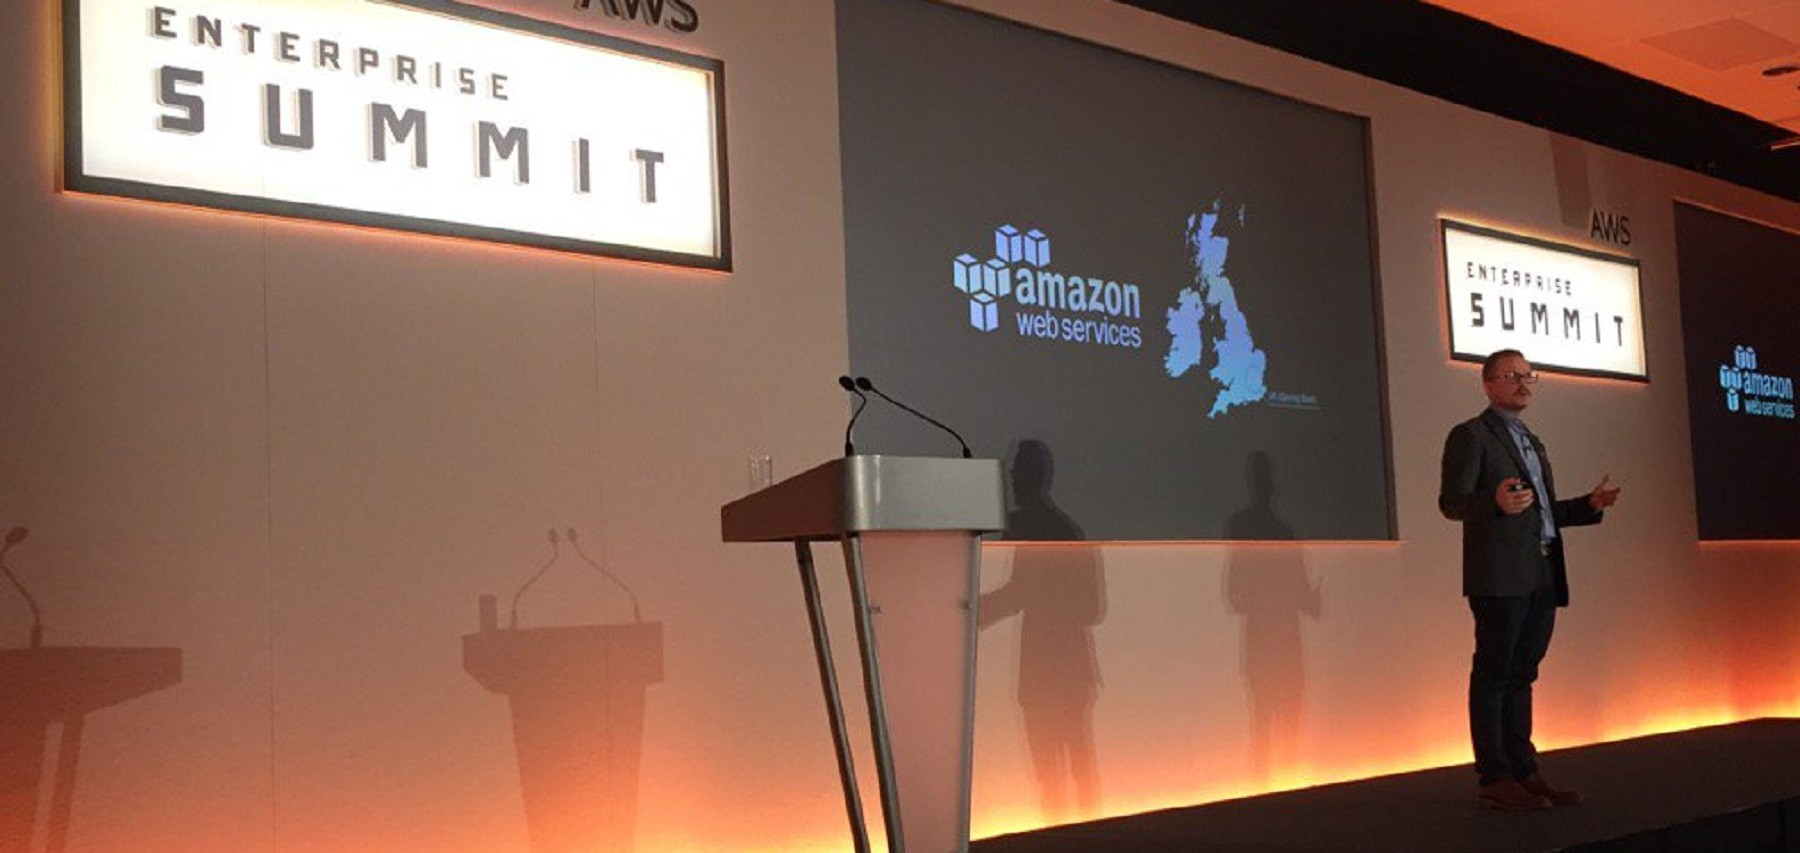 AWS's UK/EU Managing Director giving a keynote at the AWS Enterprise Summit in London